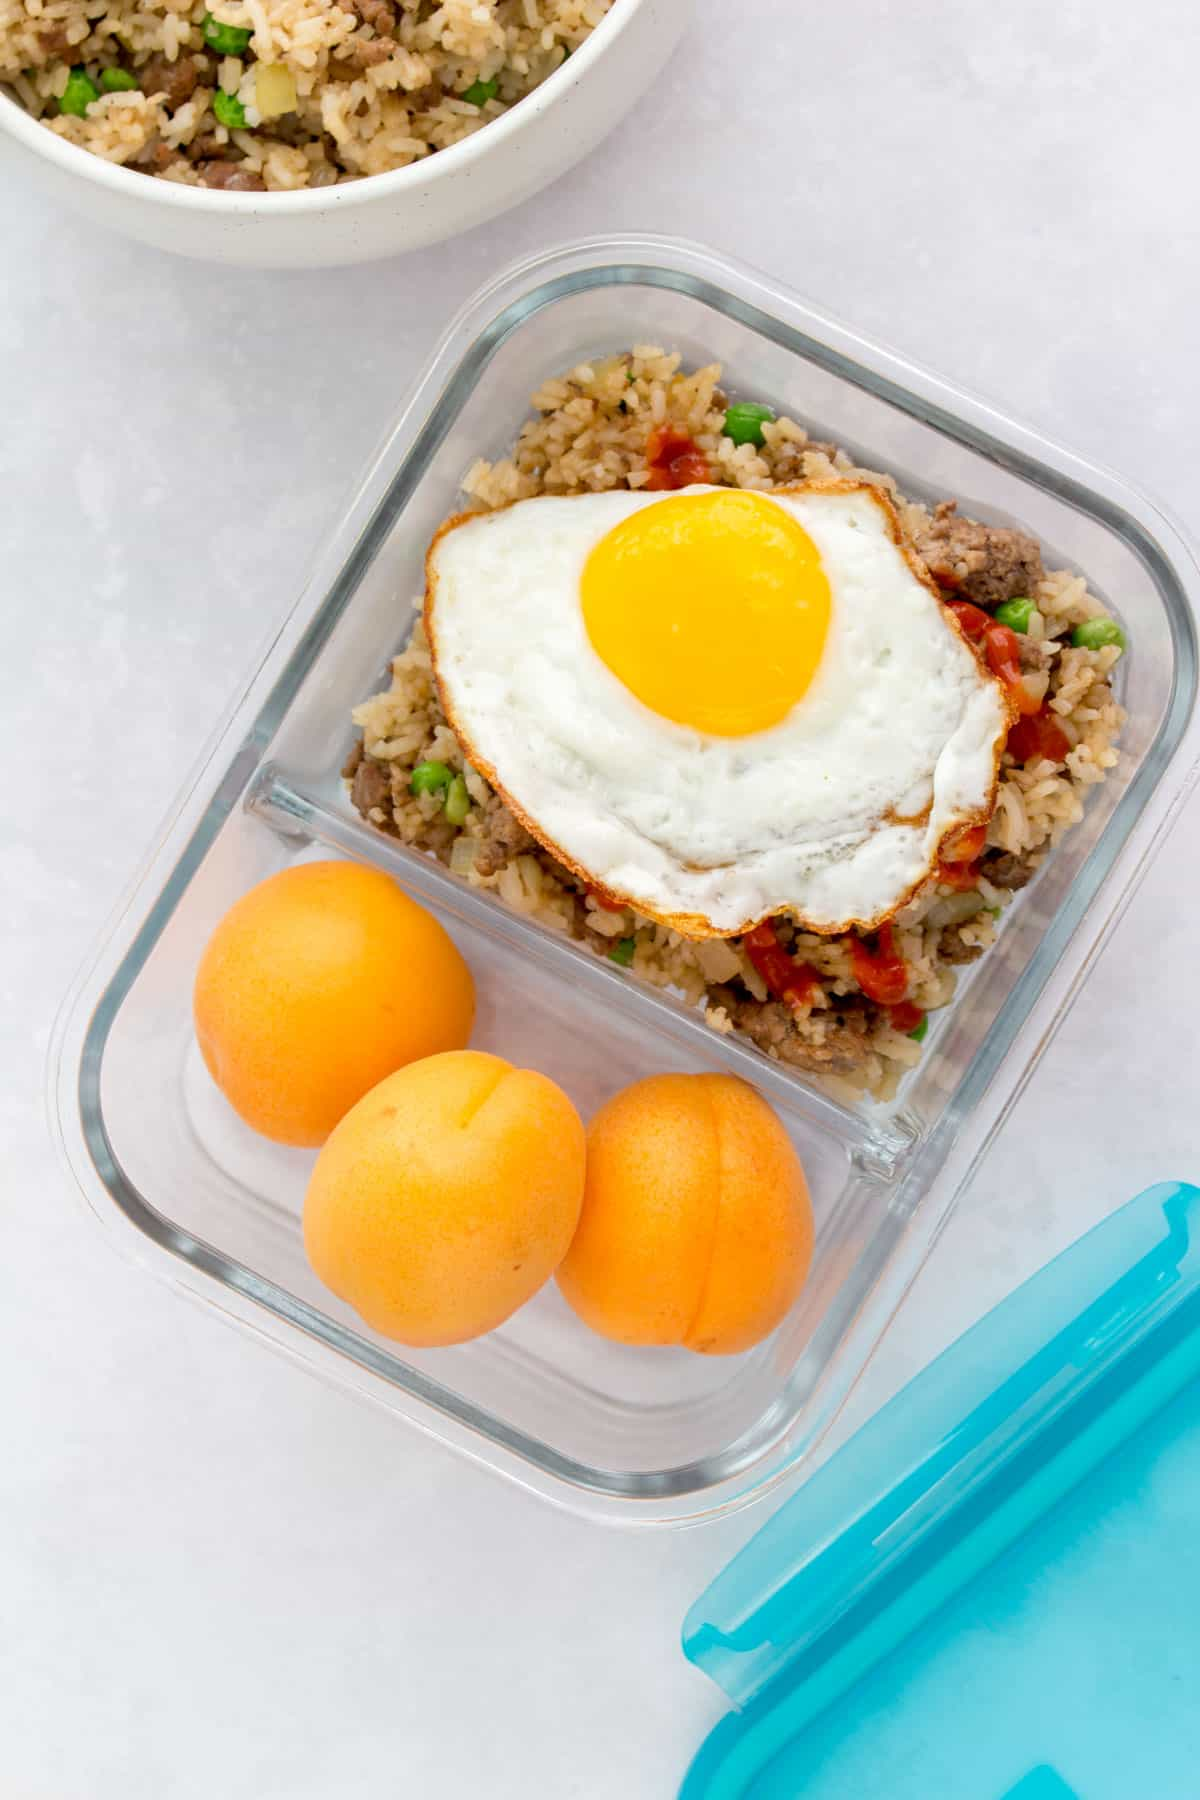 Pyrex meal prep bowl with beef fried rice and fruit.